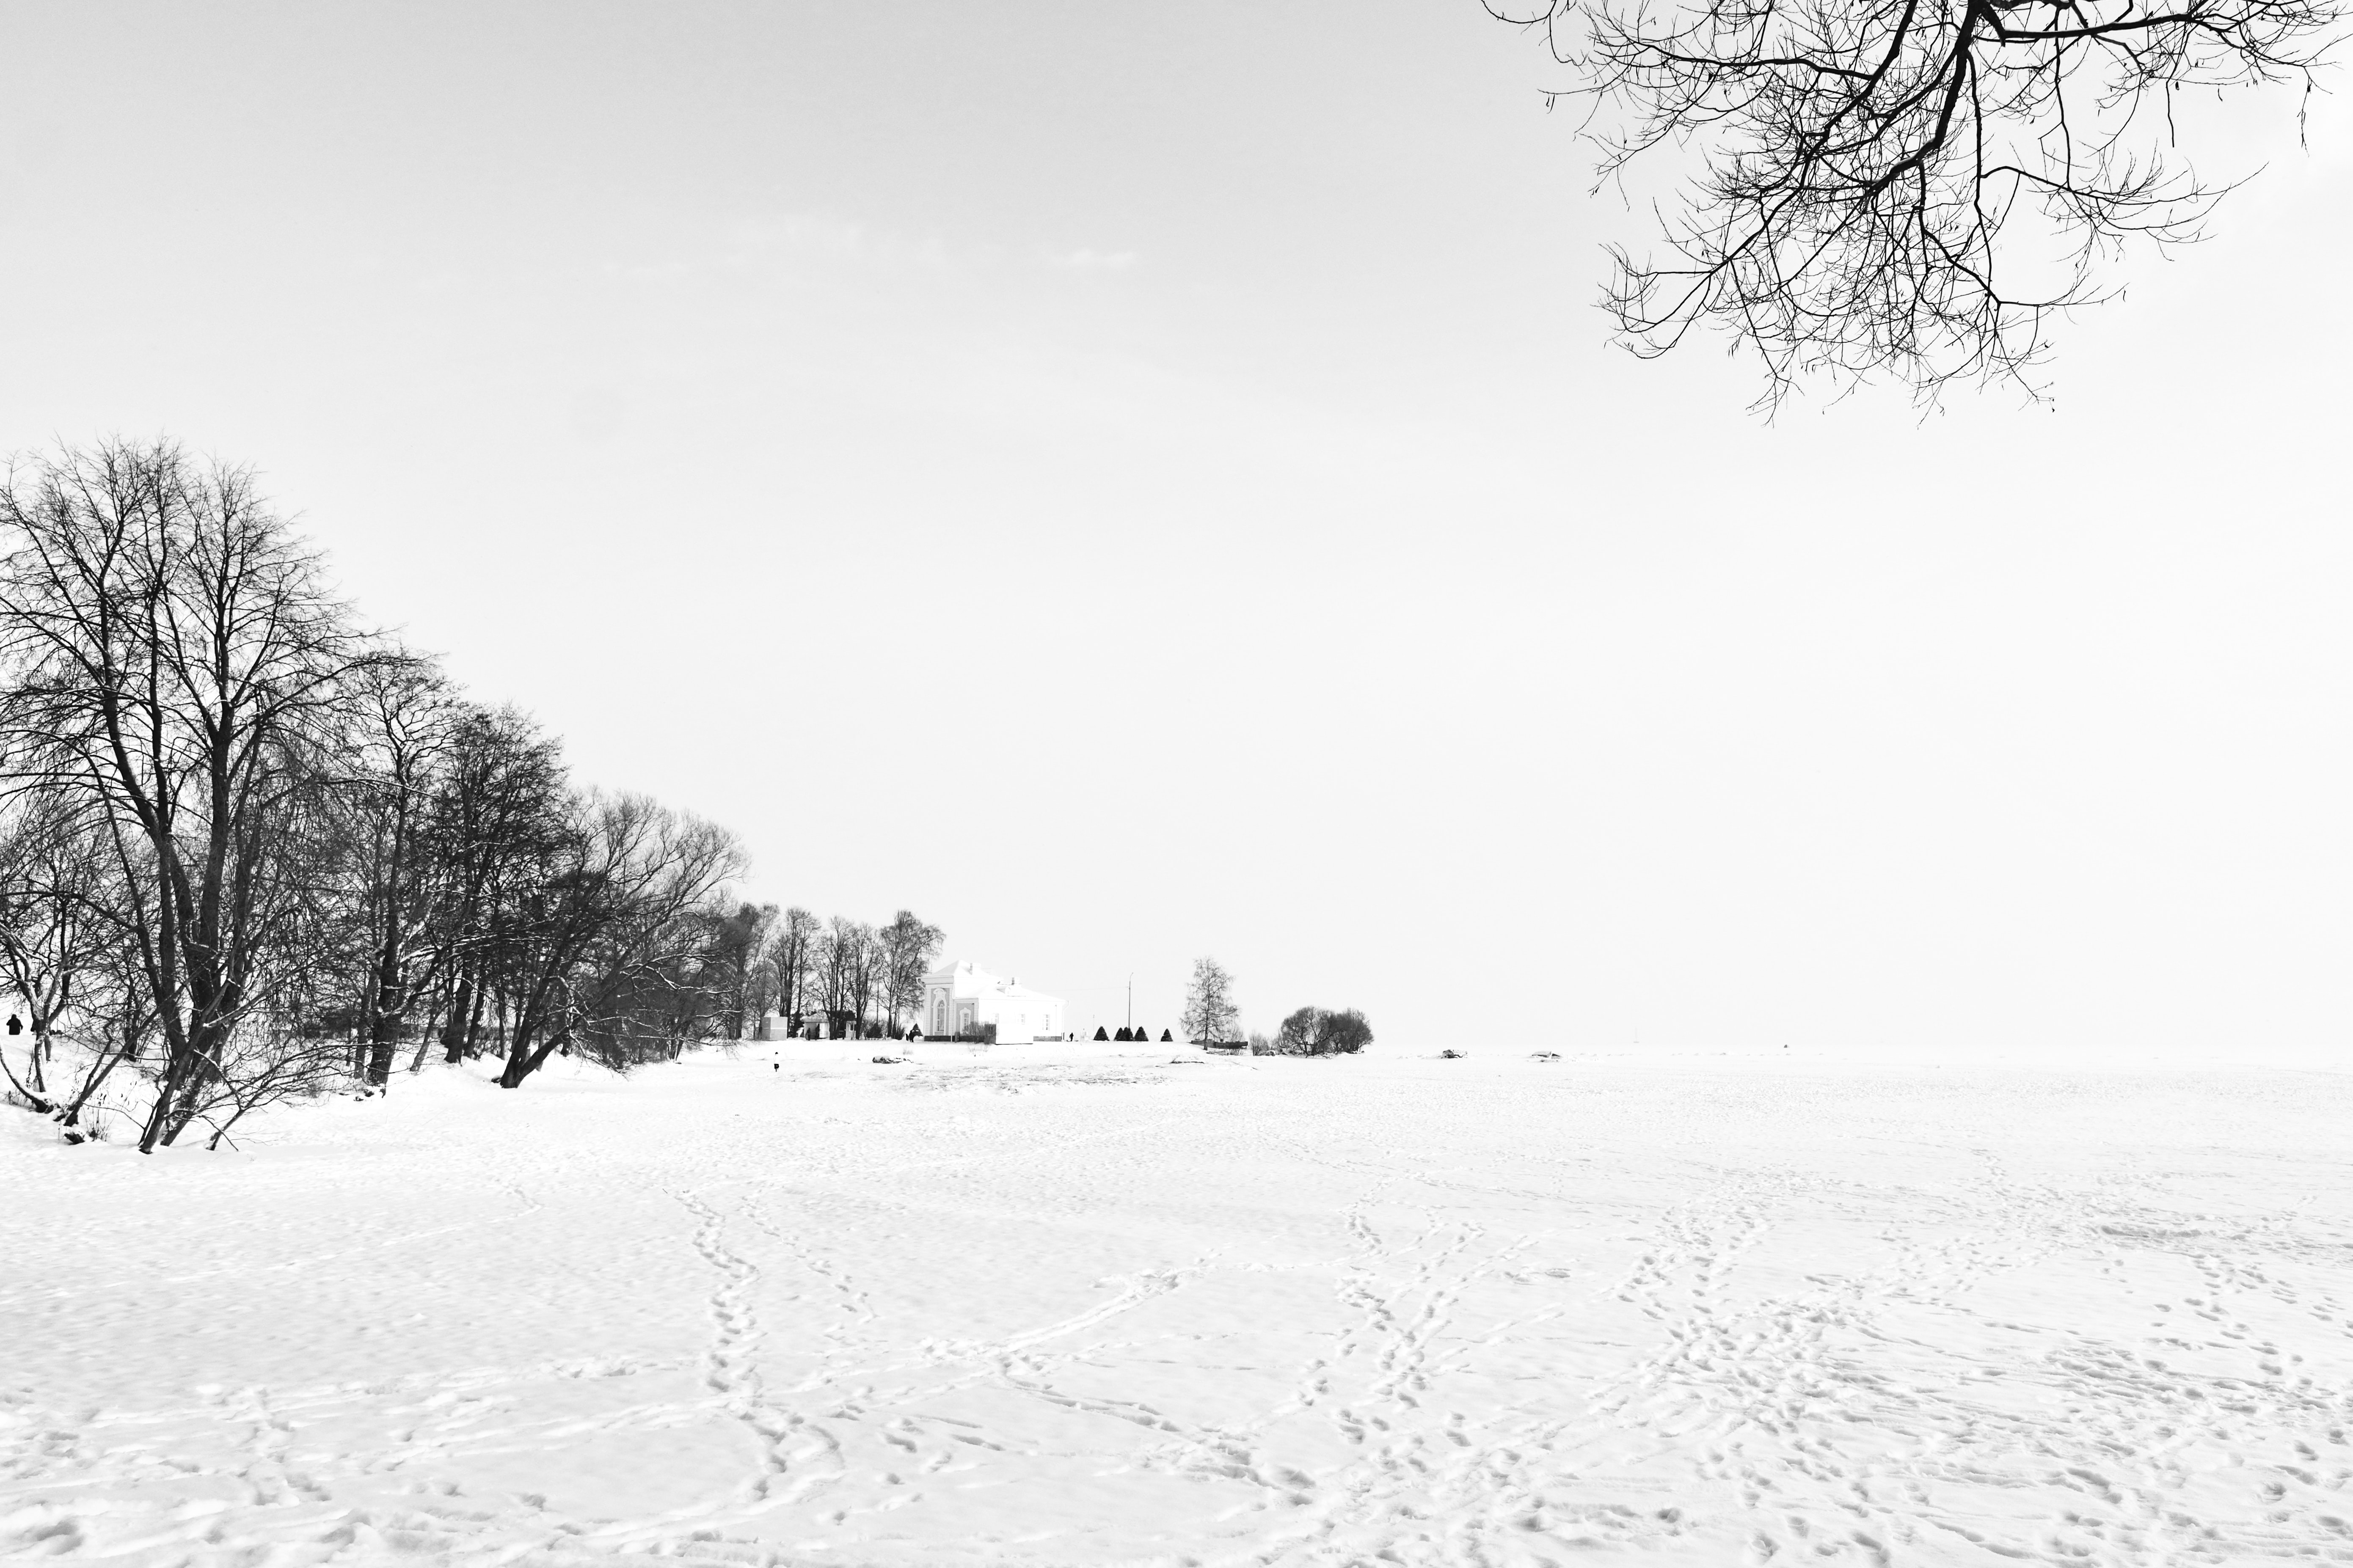 trees surrounded by snowfield